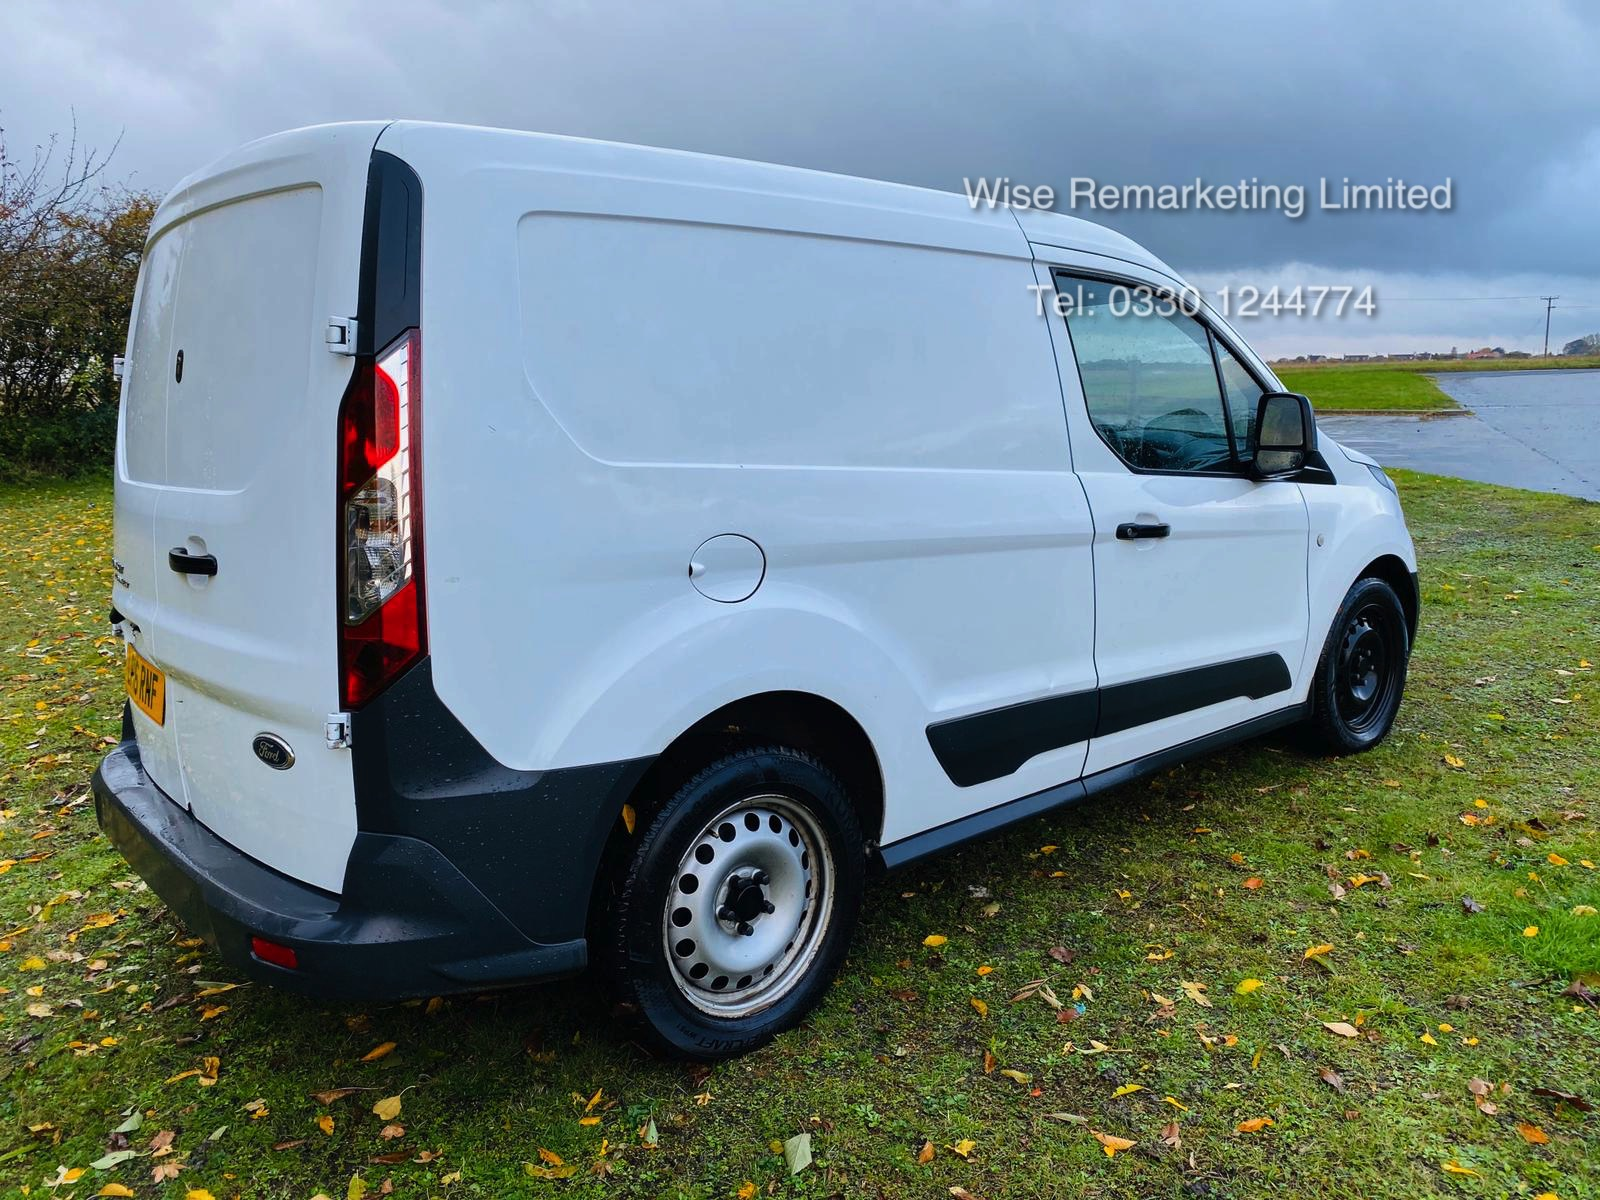 Ford Transit Connect 200 1.6 TDCI - 2016 16 Reg - 1 Keeper From New - Elec Pack -Bluetooth - Image 7 of 18